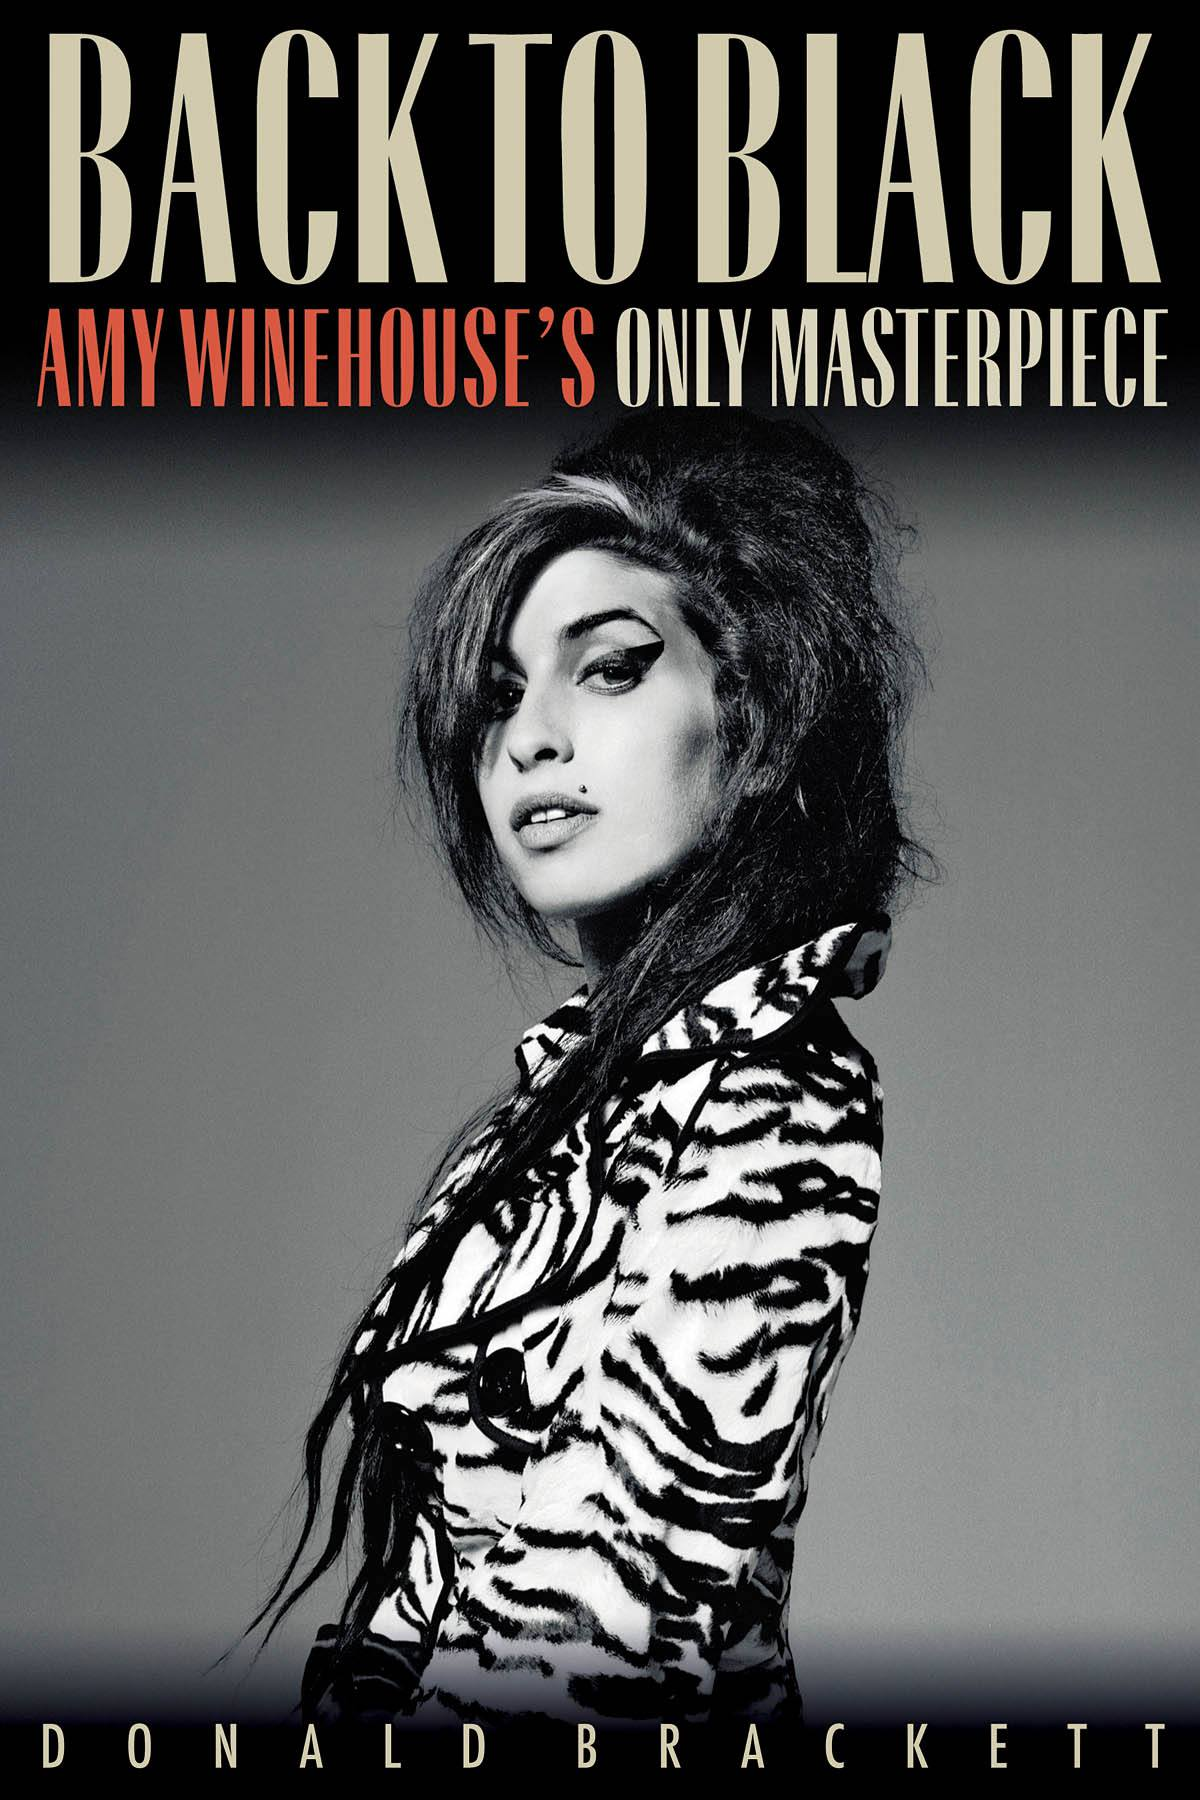 Back to Black Amy Winehose's only Masterpiece copy